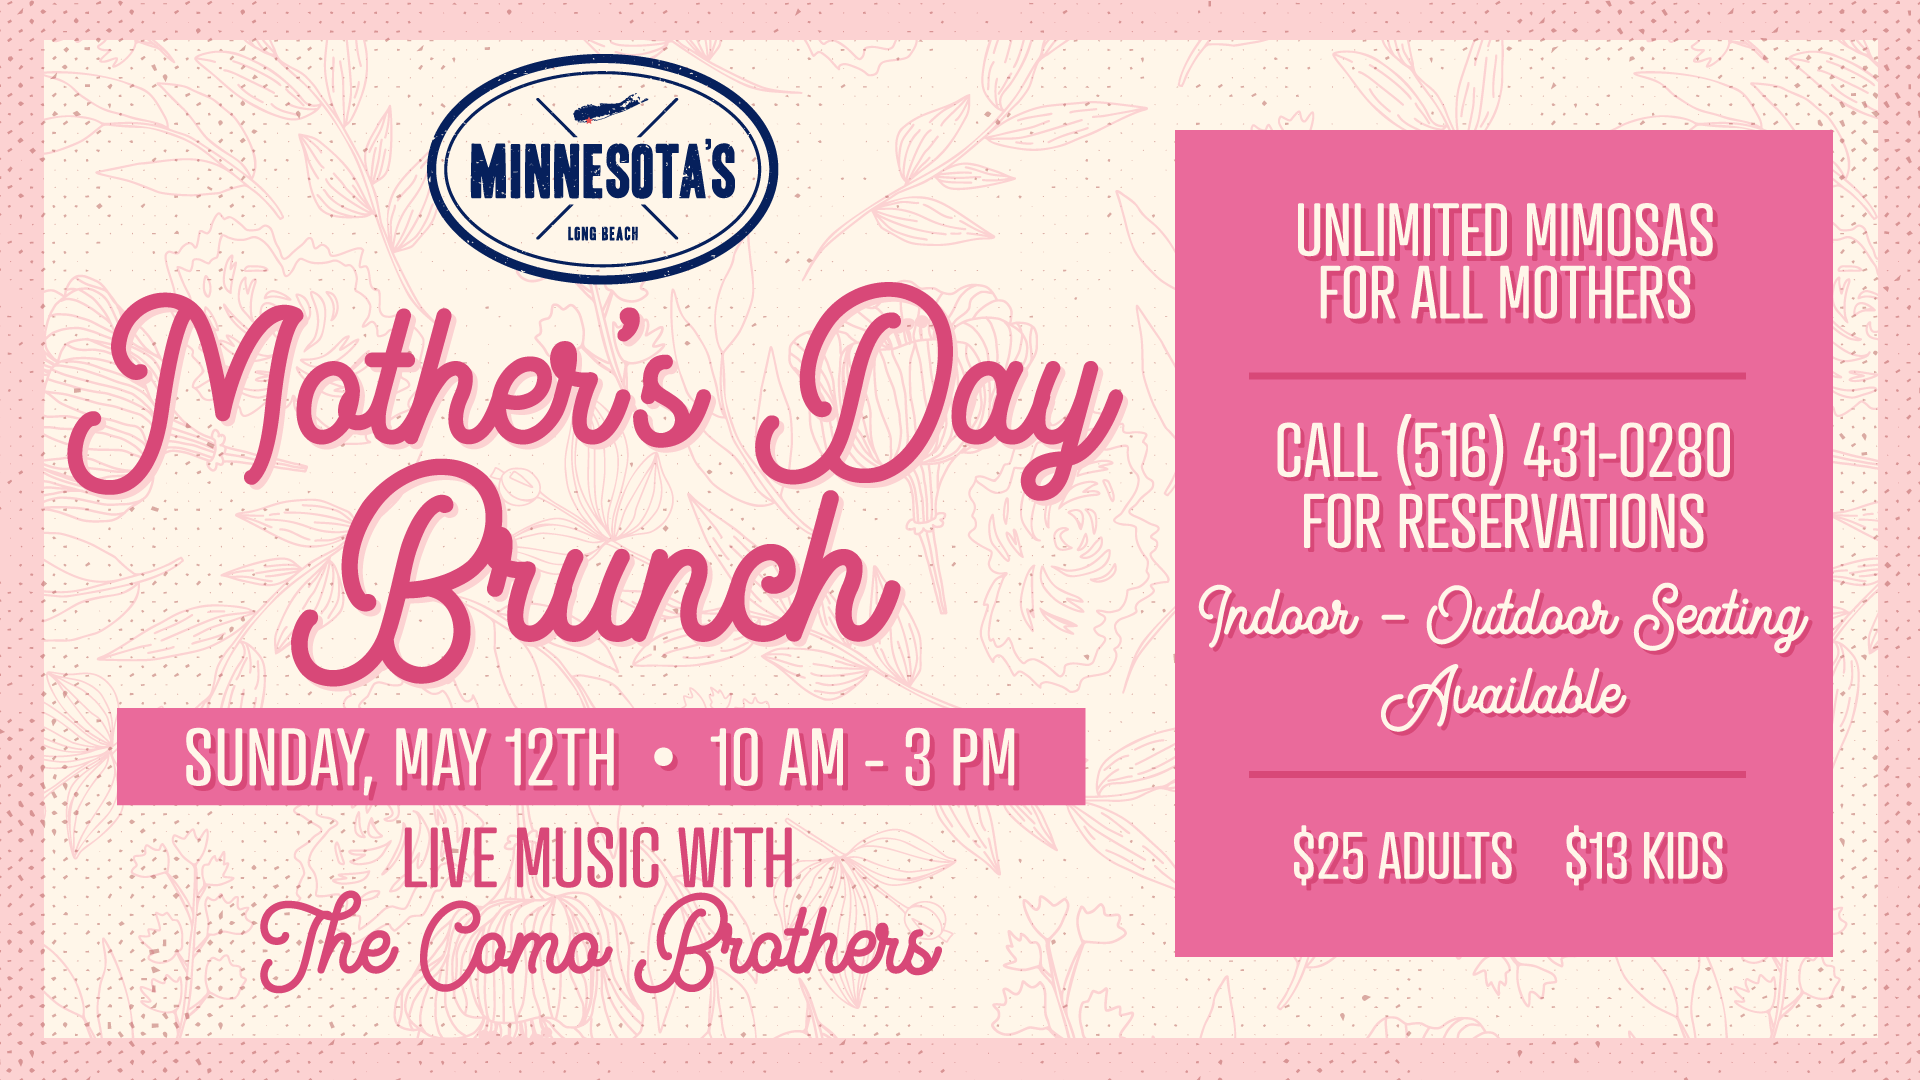 Mother's Day Brunch on May 12th from 10 AM - 3 PM. Free mimosas for all moms and live music with the Como Brothers